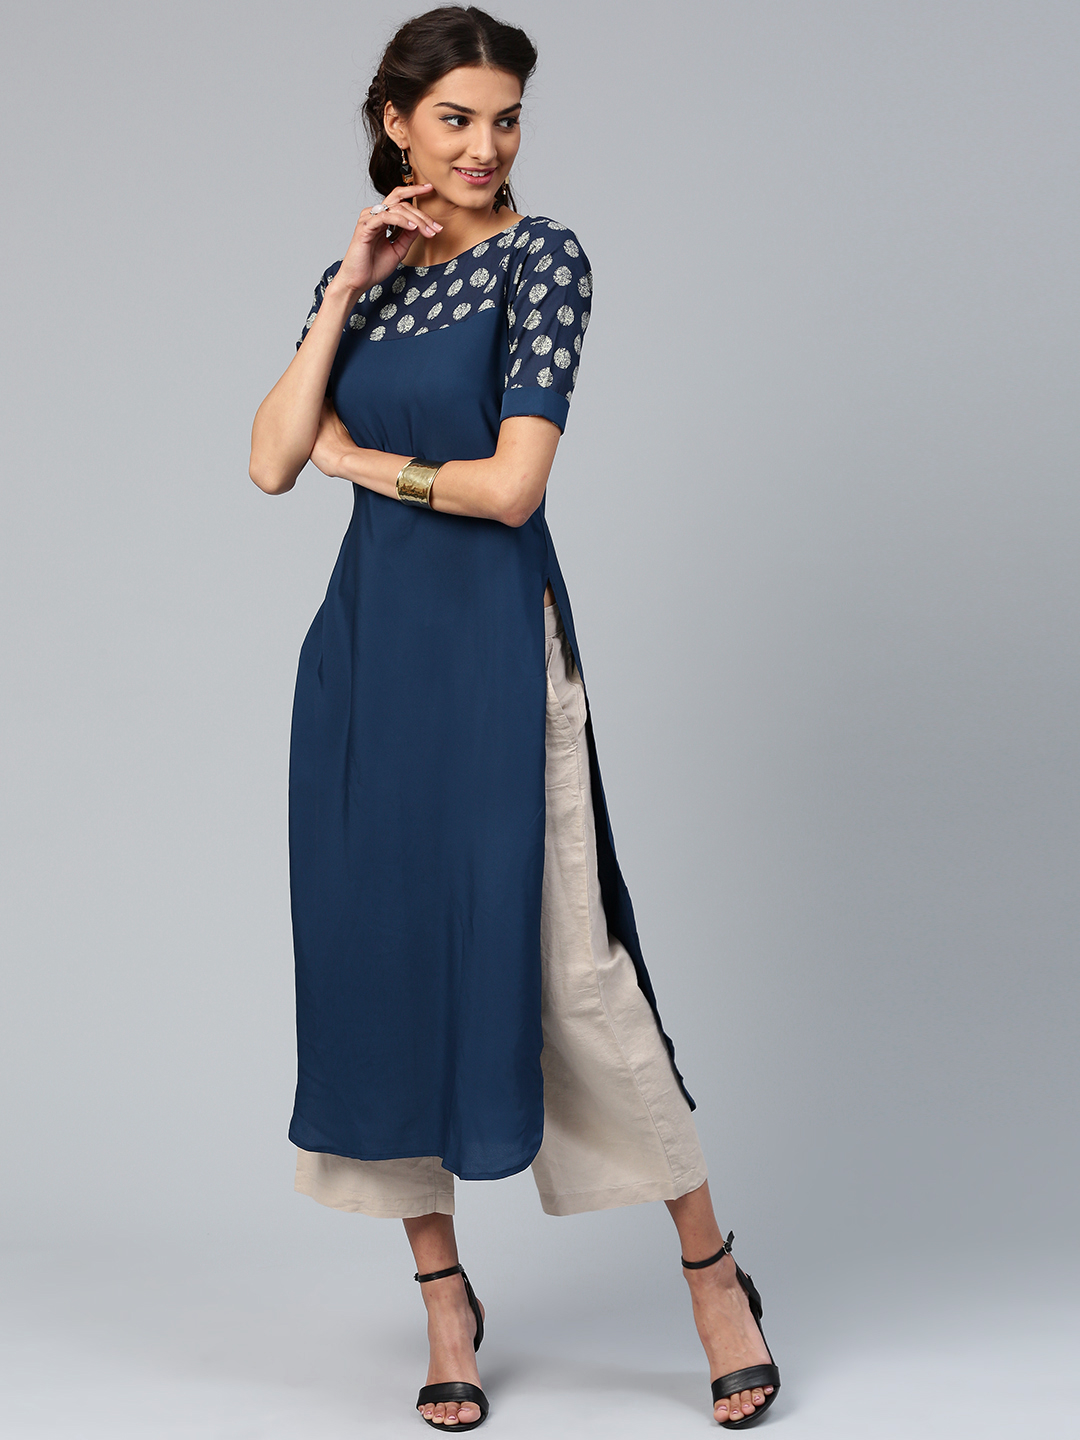 A great fusion of fashion and culture: the women's designer kurtis